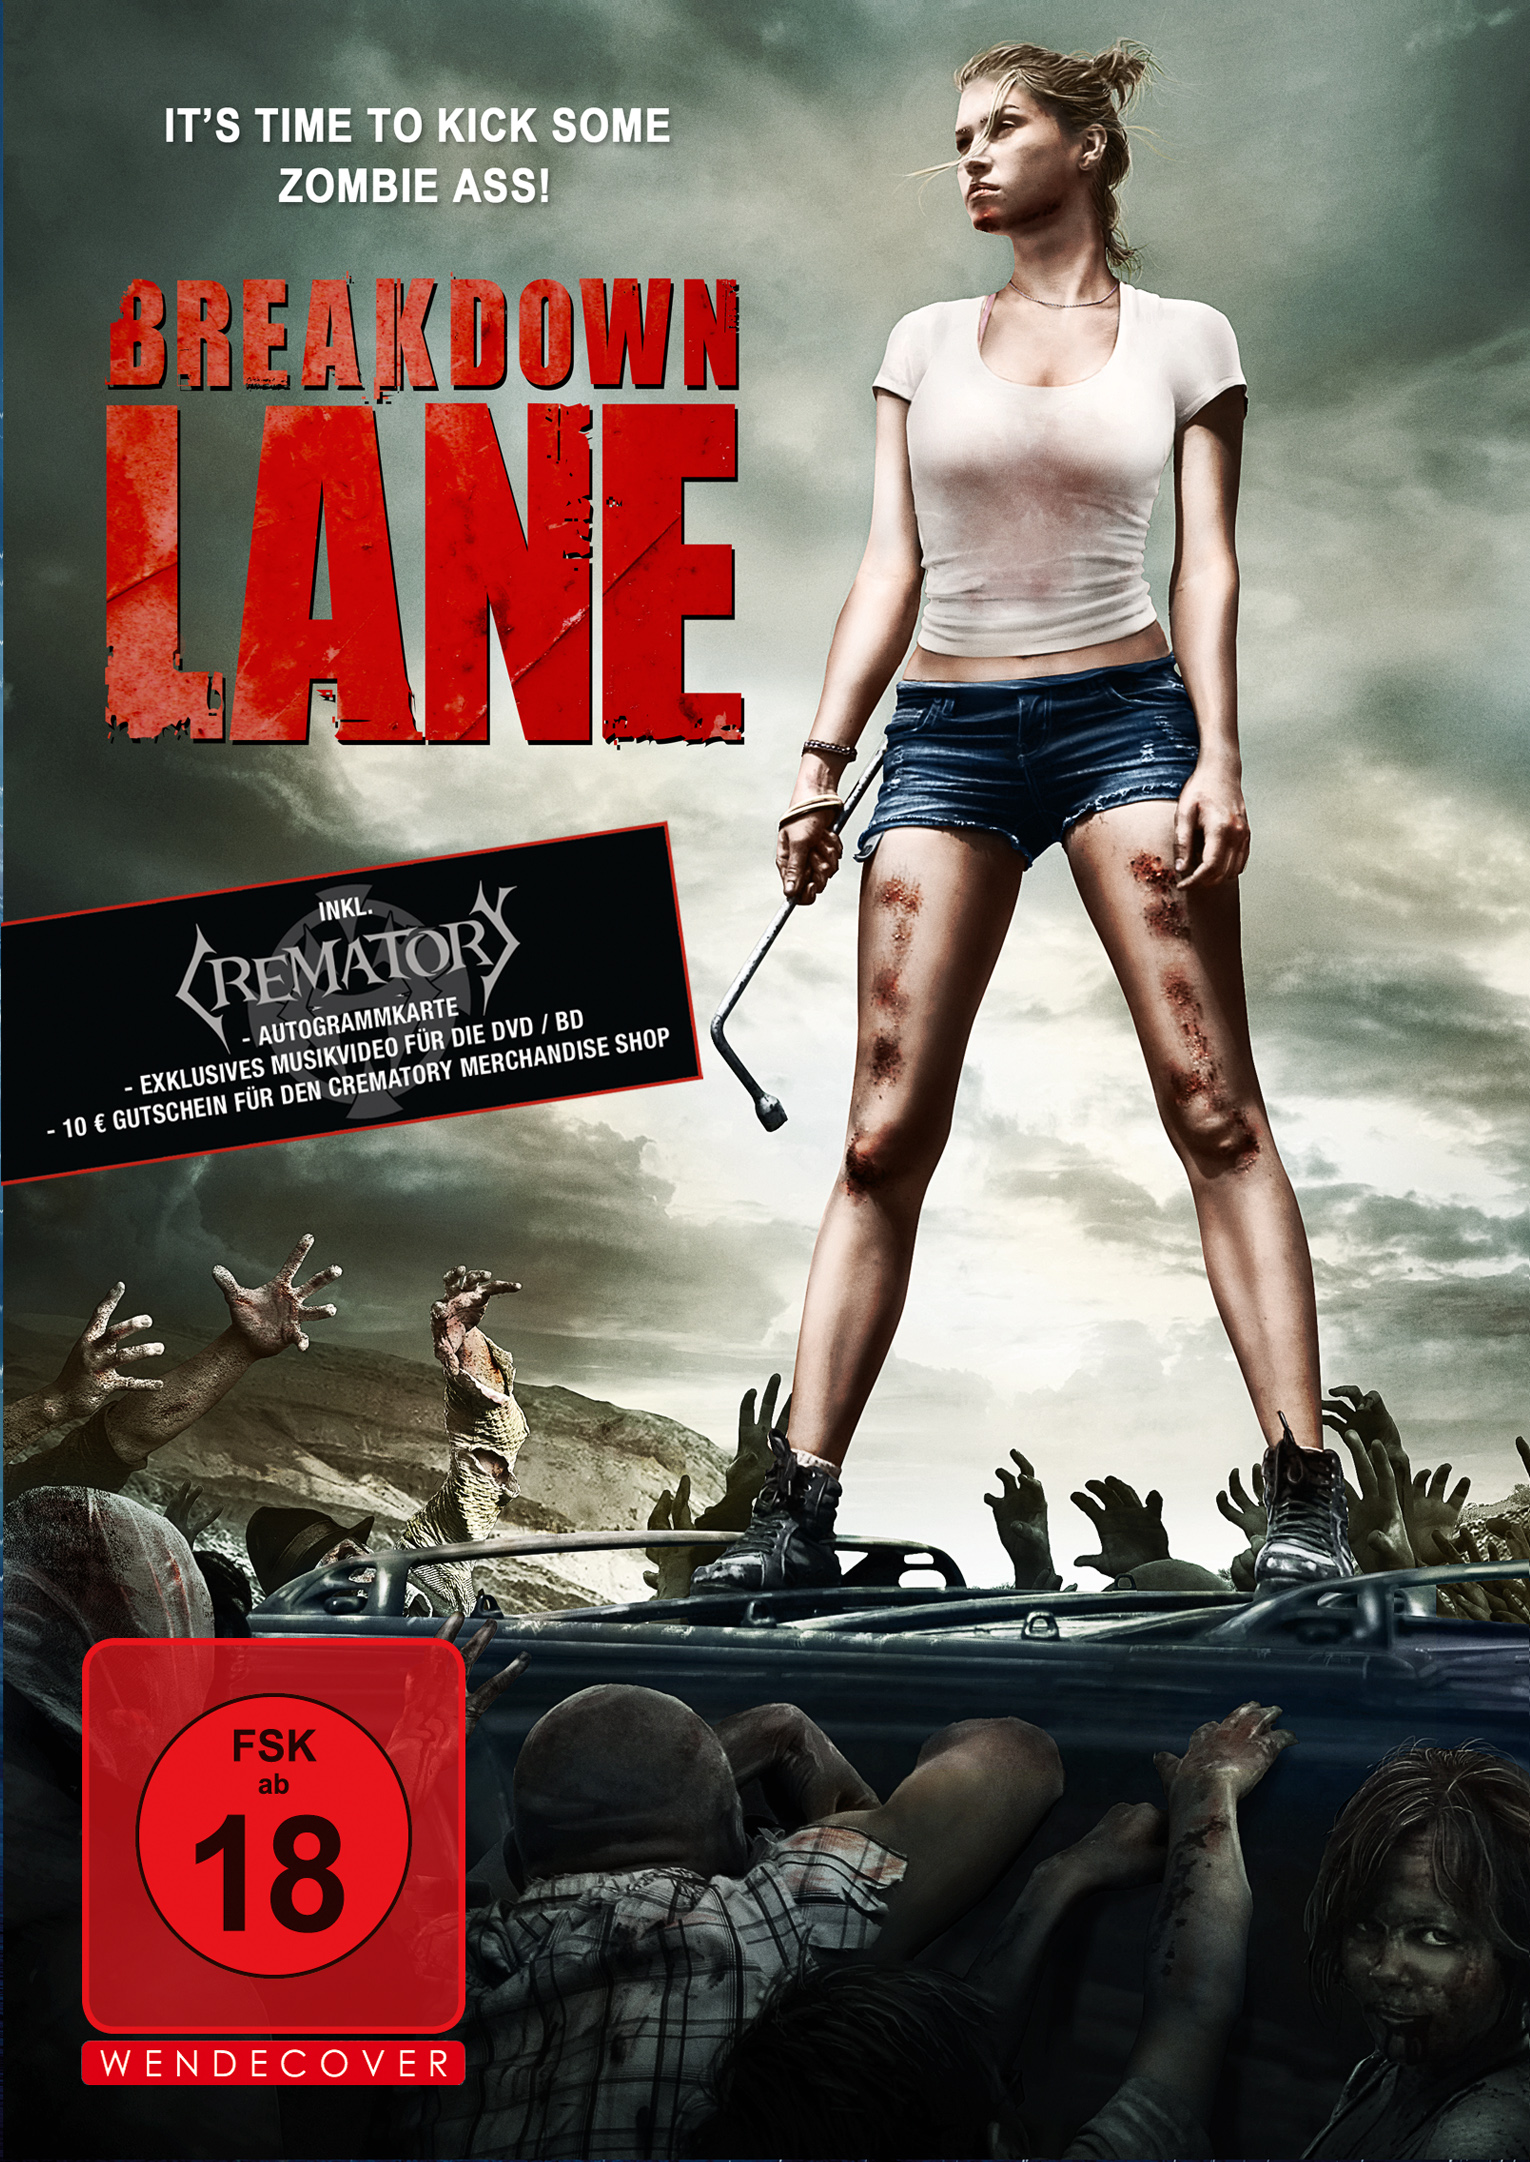 BREAKDOWN LANE (2017) Reviews and overview - MOVIES and MANIA